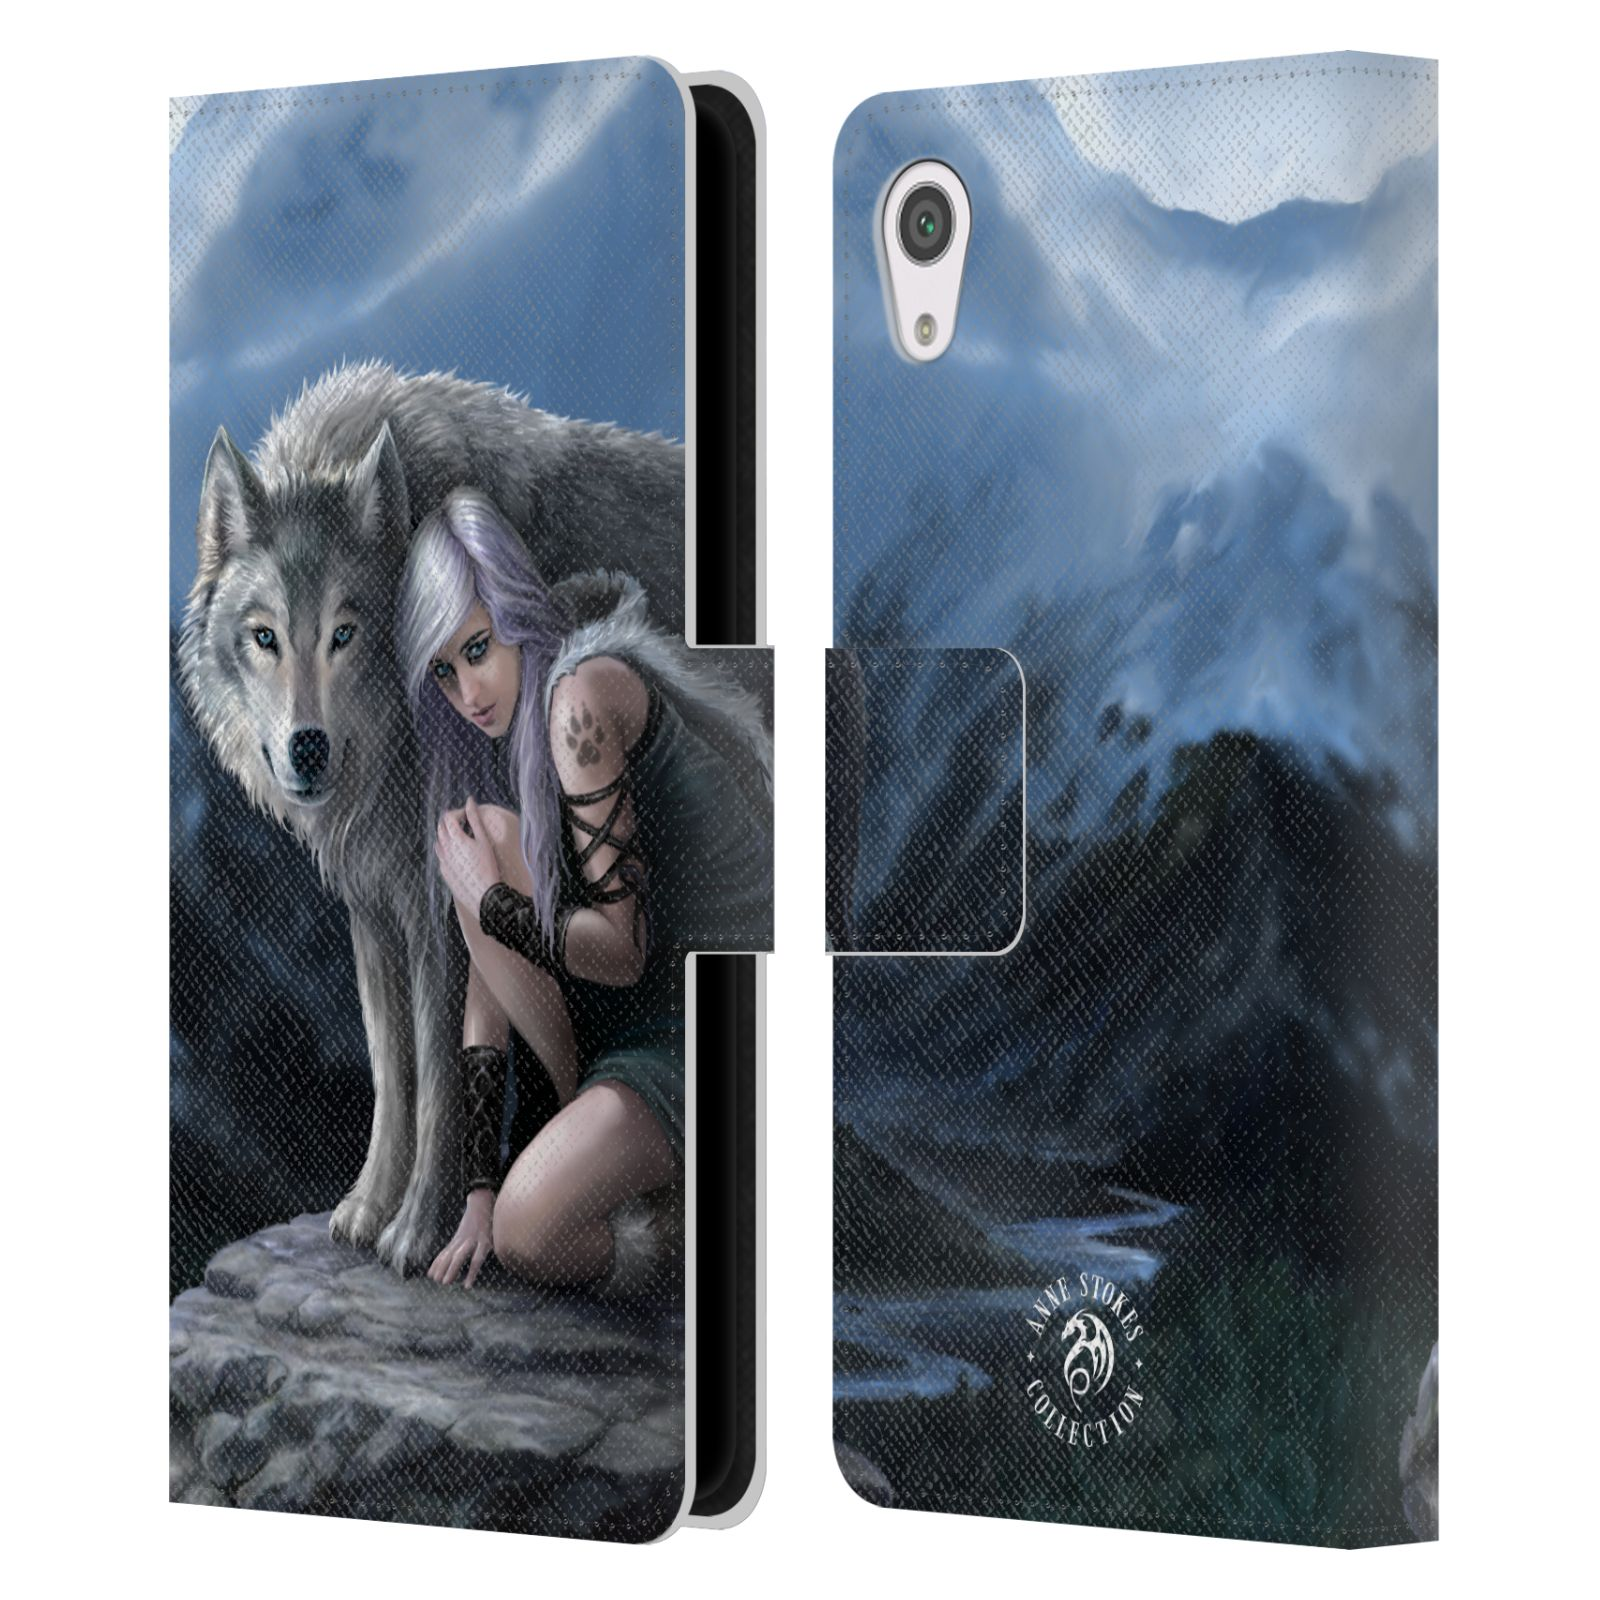 OFFICIAL-ANNE-STOKES-WOLVES-LEATHER-BOOK-WALLET-CASE-COVER-FOR-SONY-PHONES-1